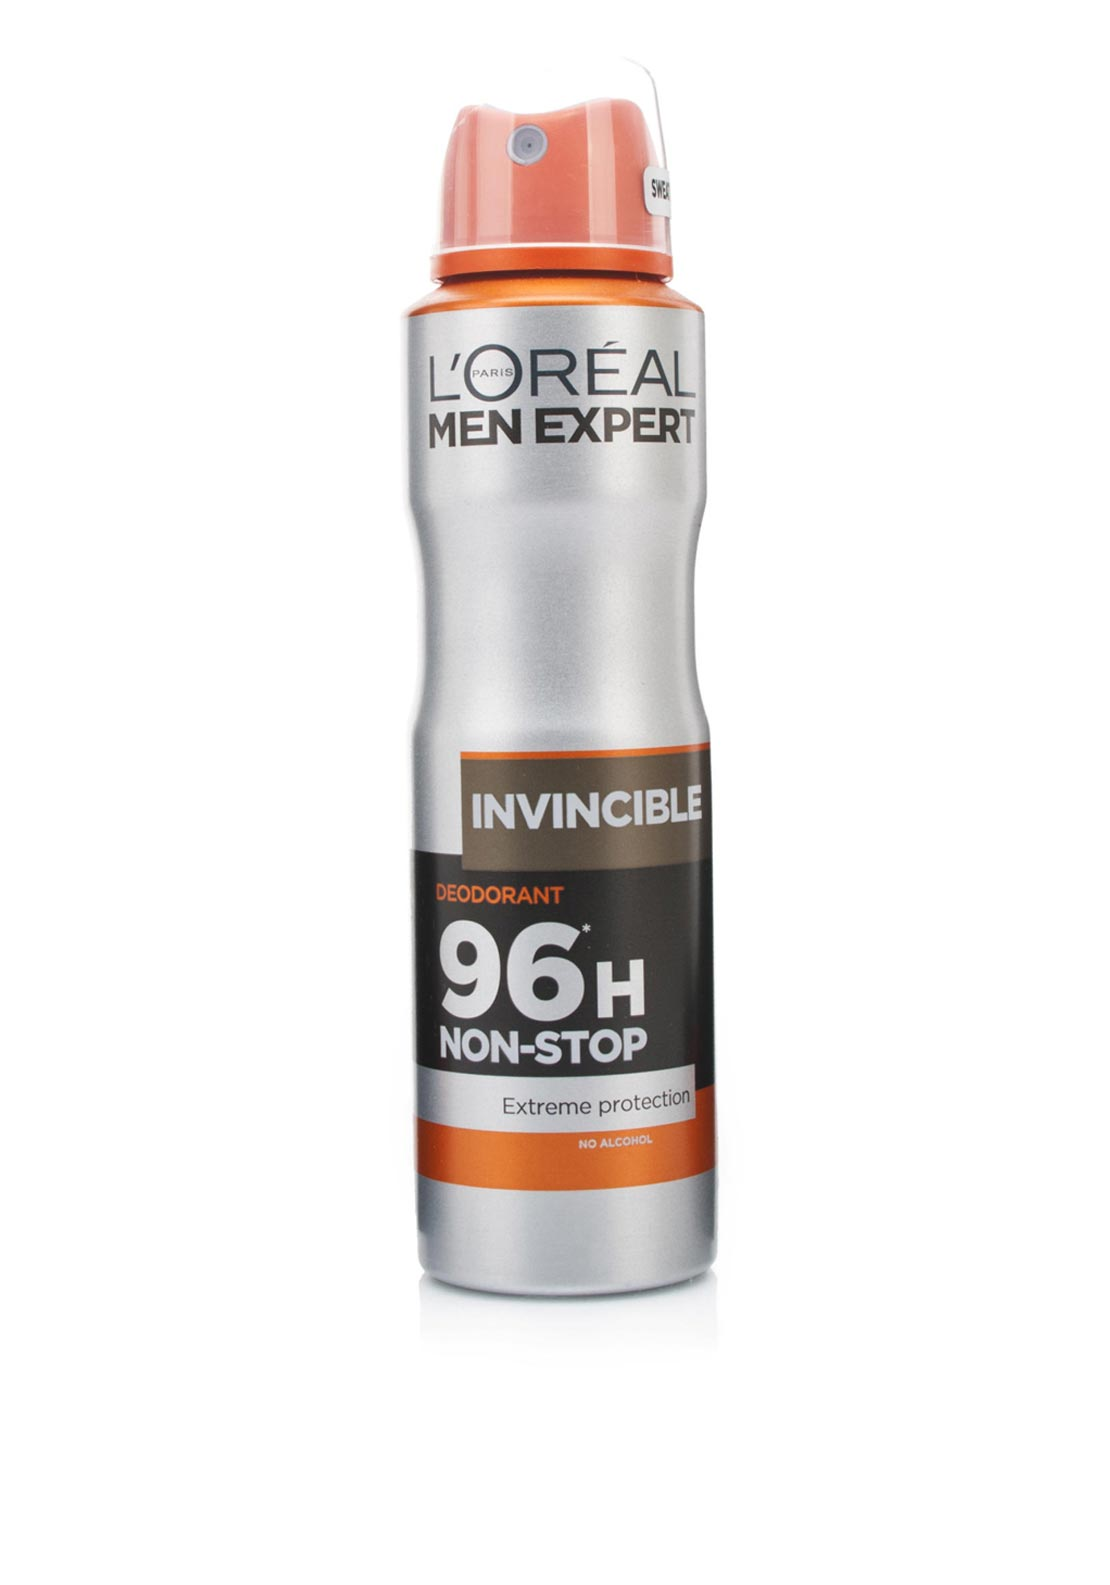 L'Oreal Men Expert Invincible Deodorant, 250ml